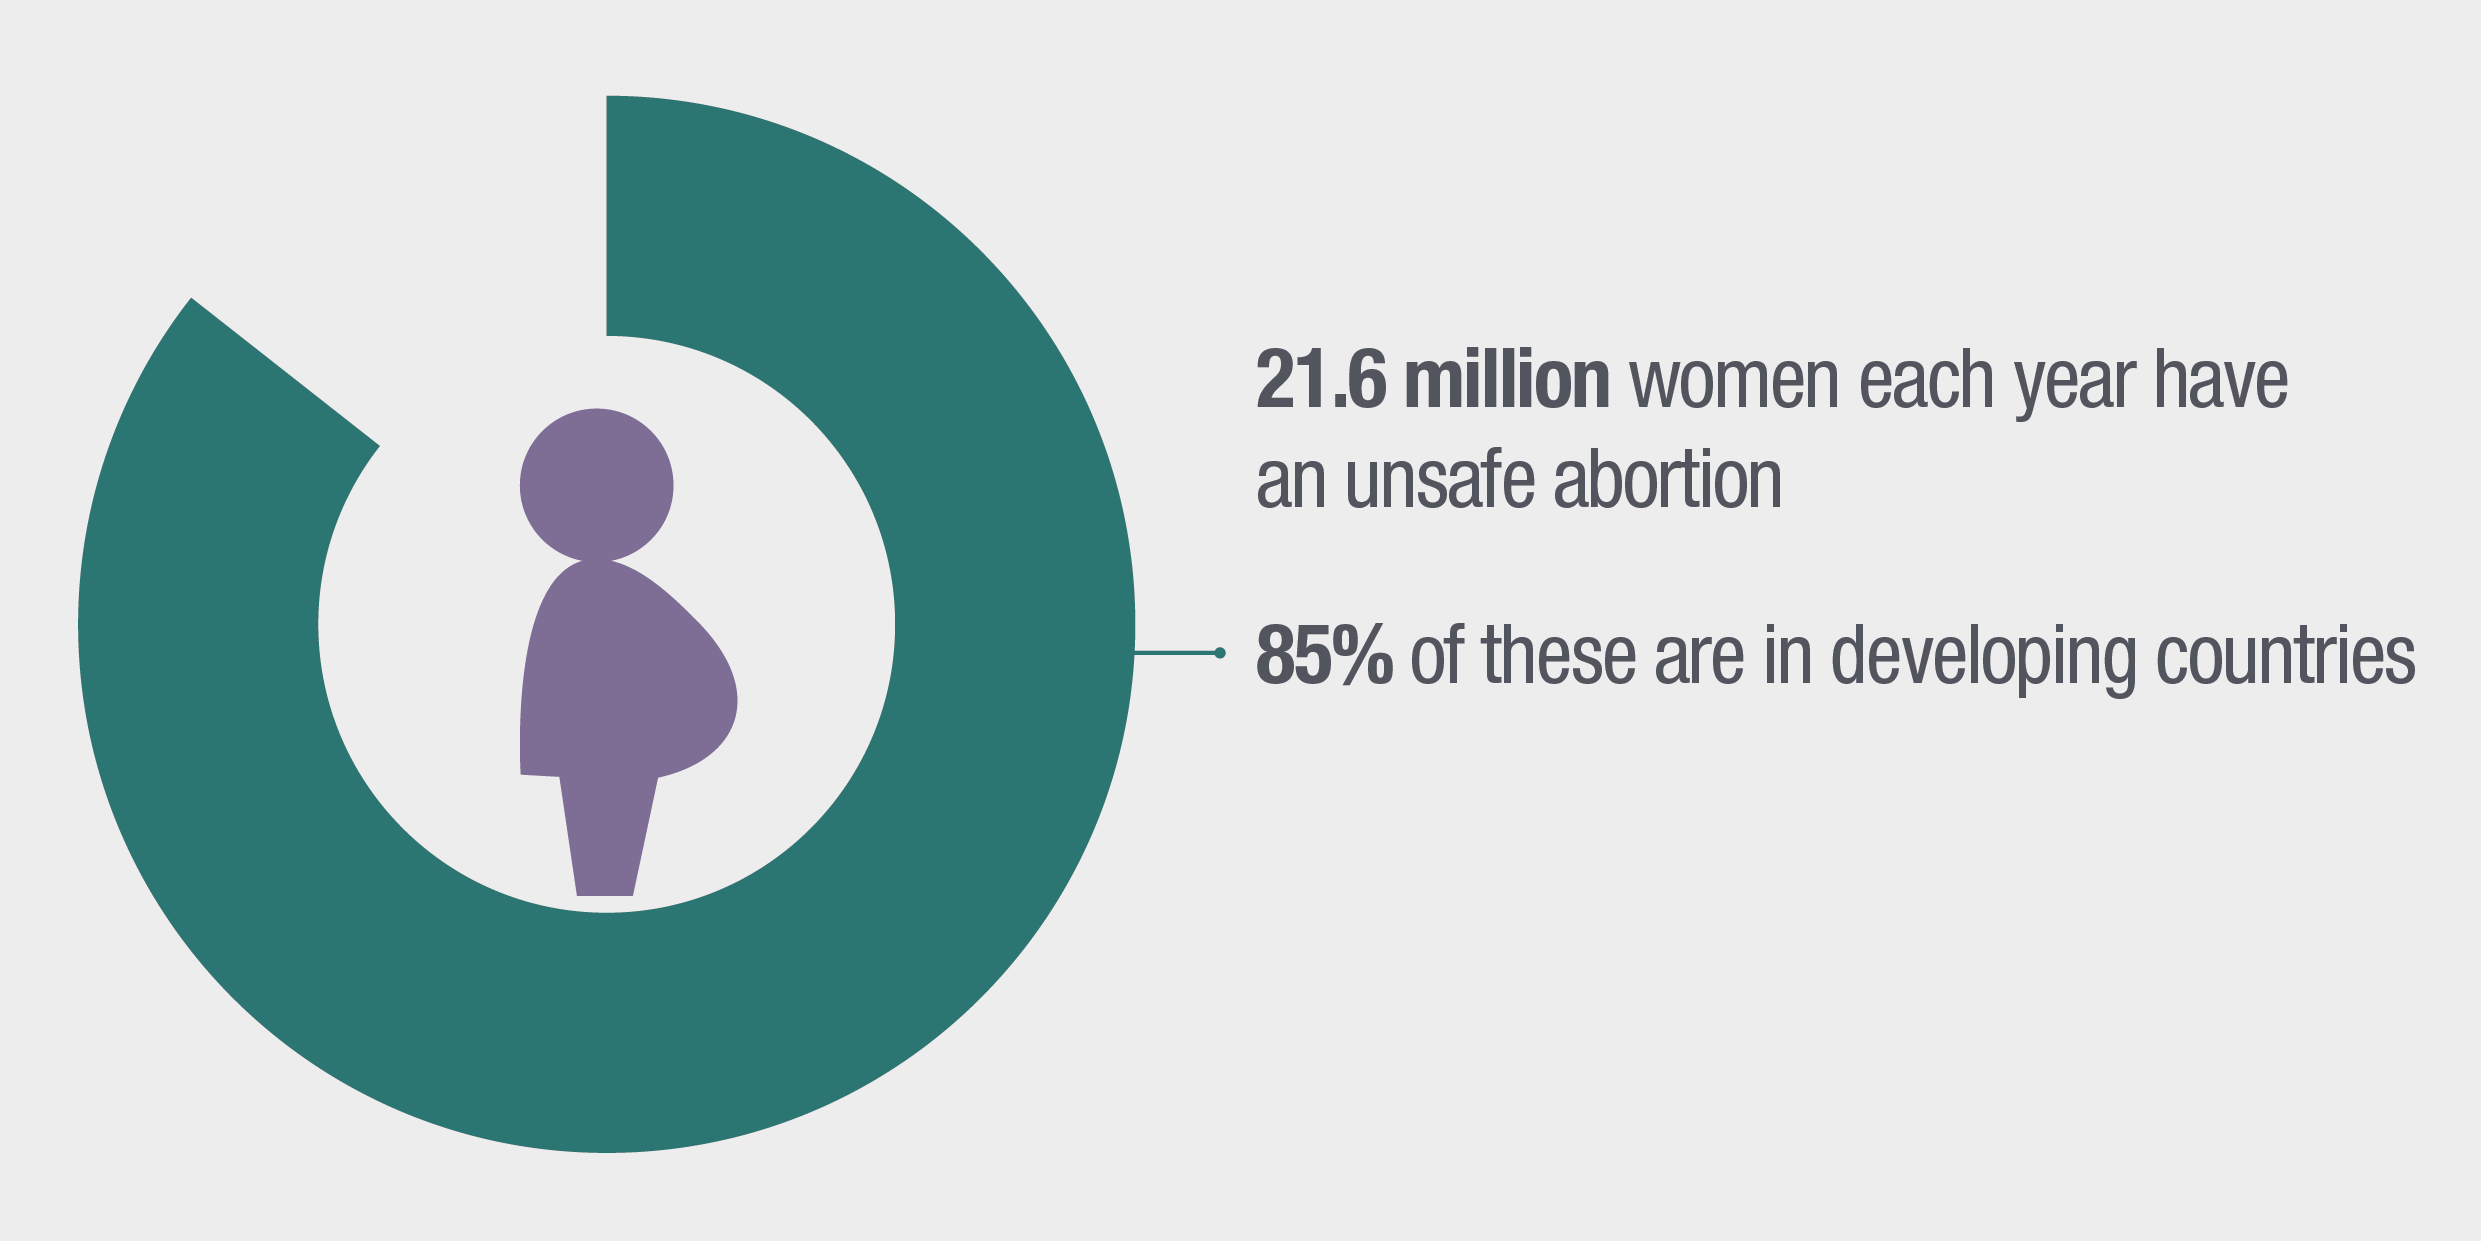 21.6 million women each year have an unsafe abortion. 85% of these are in developing countries